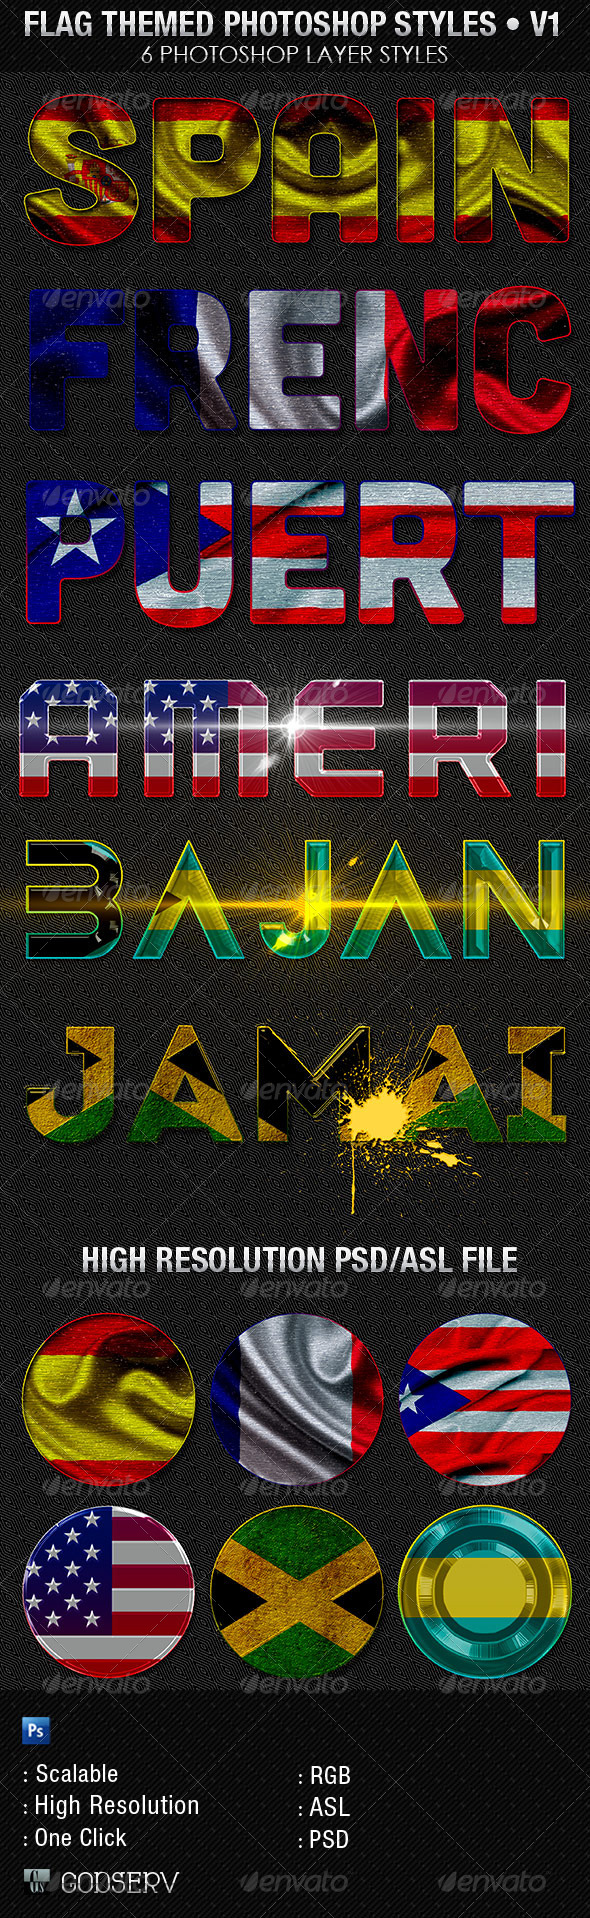 GraphicRiver Flag Themed Photoshop Text Layer Styles V1 5823450